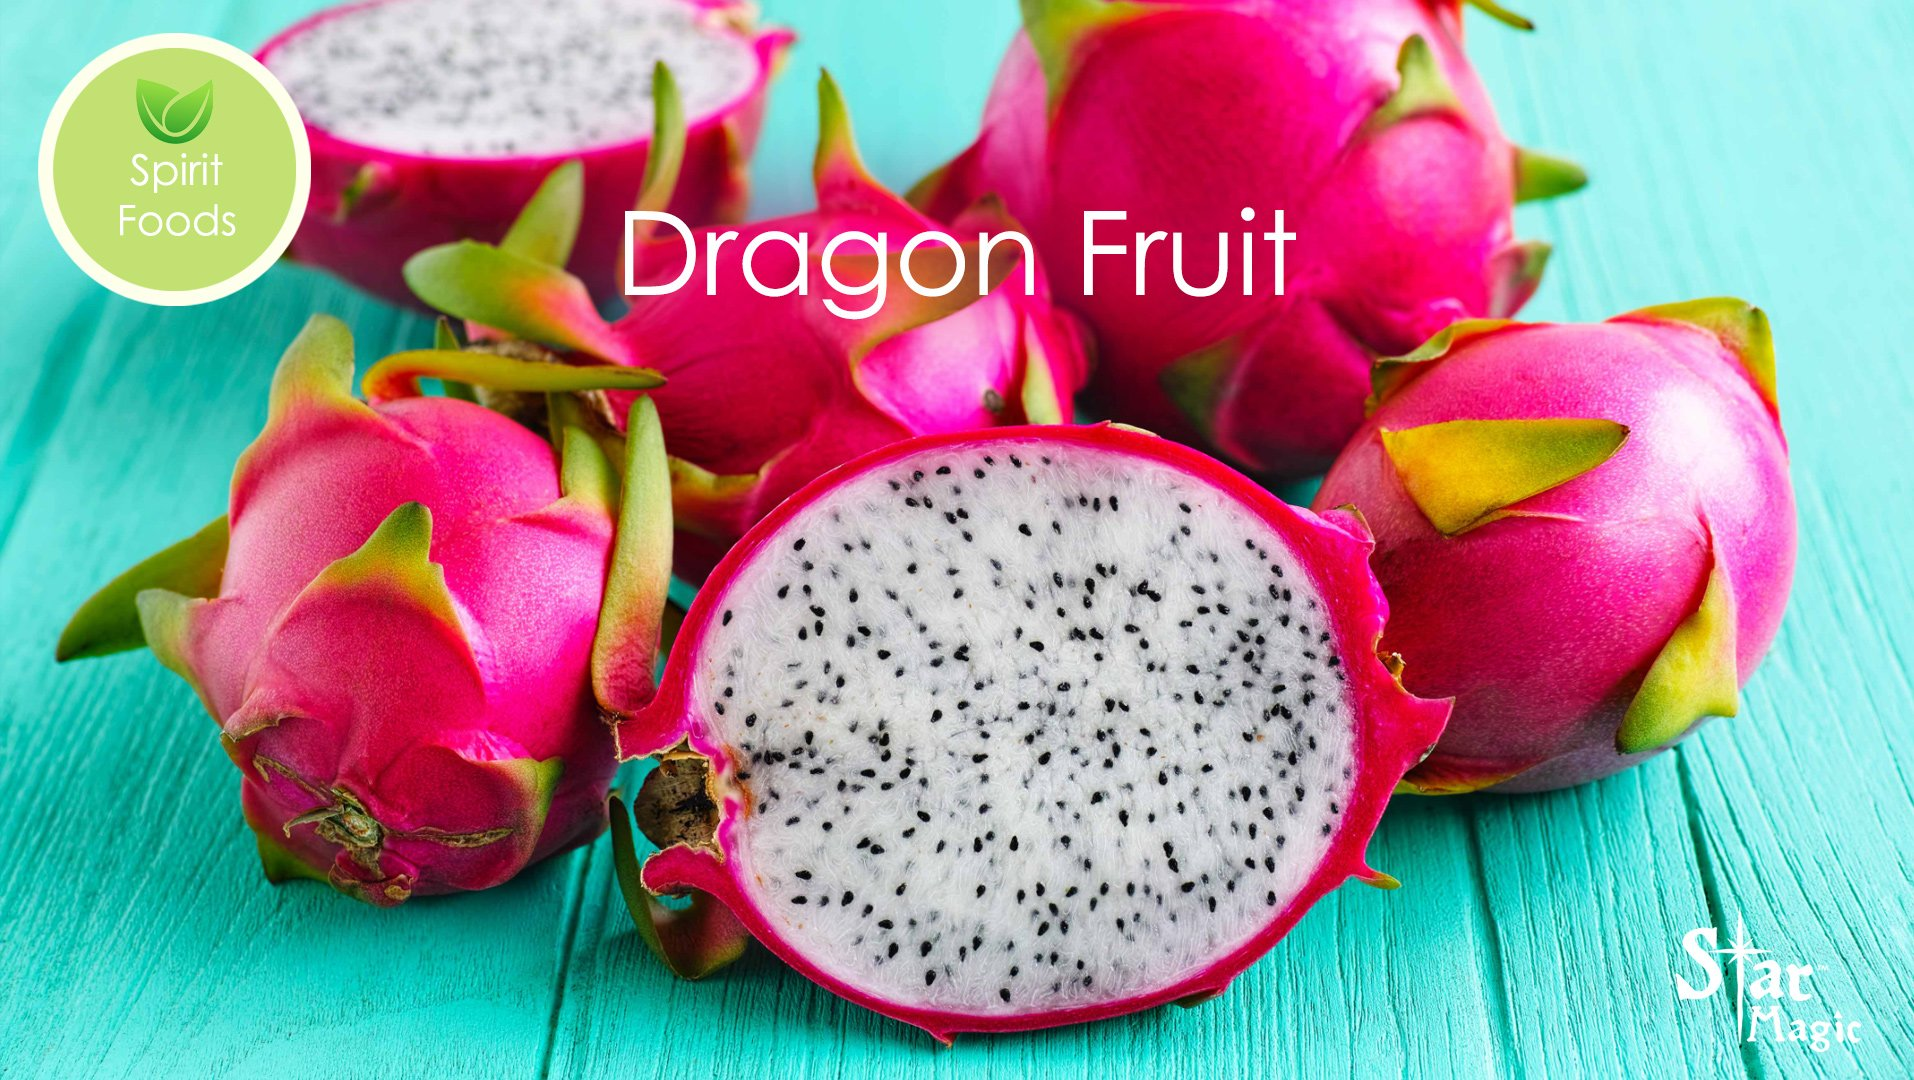 Spirit Food – Dragonfruit